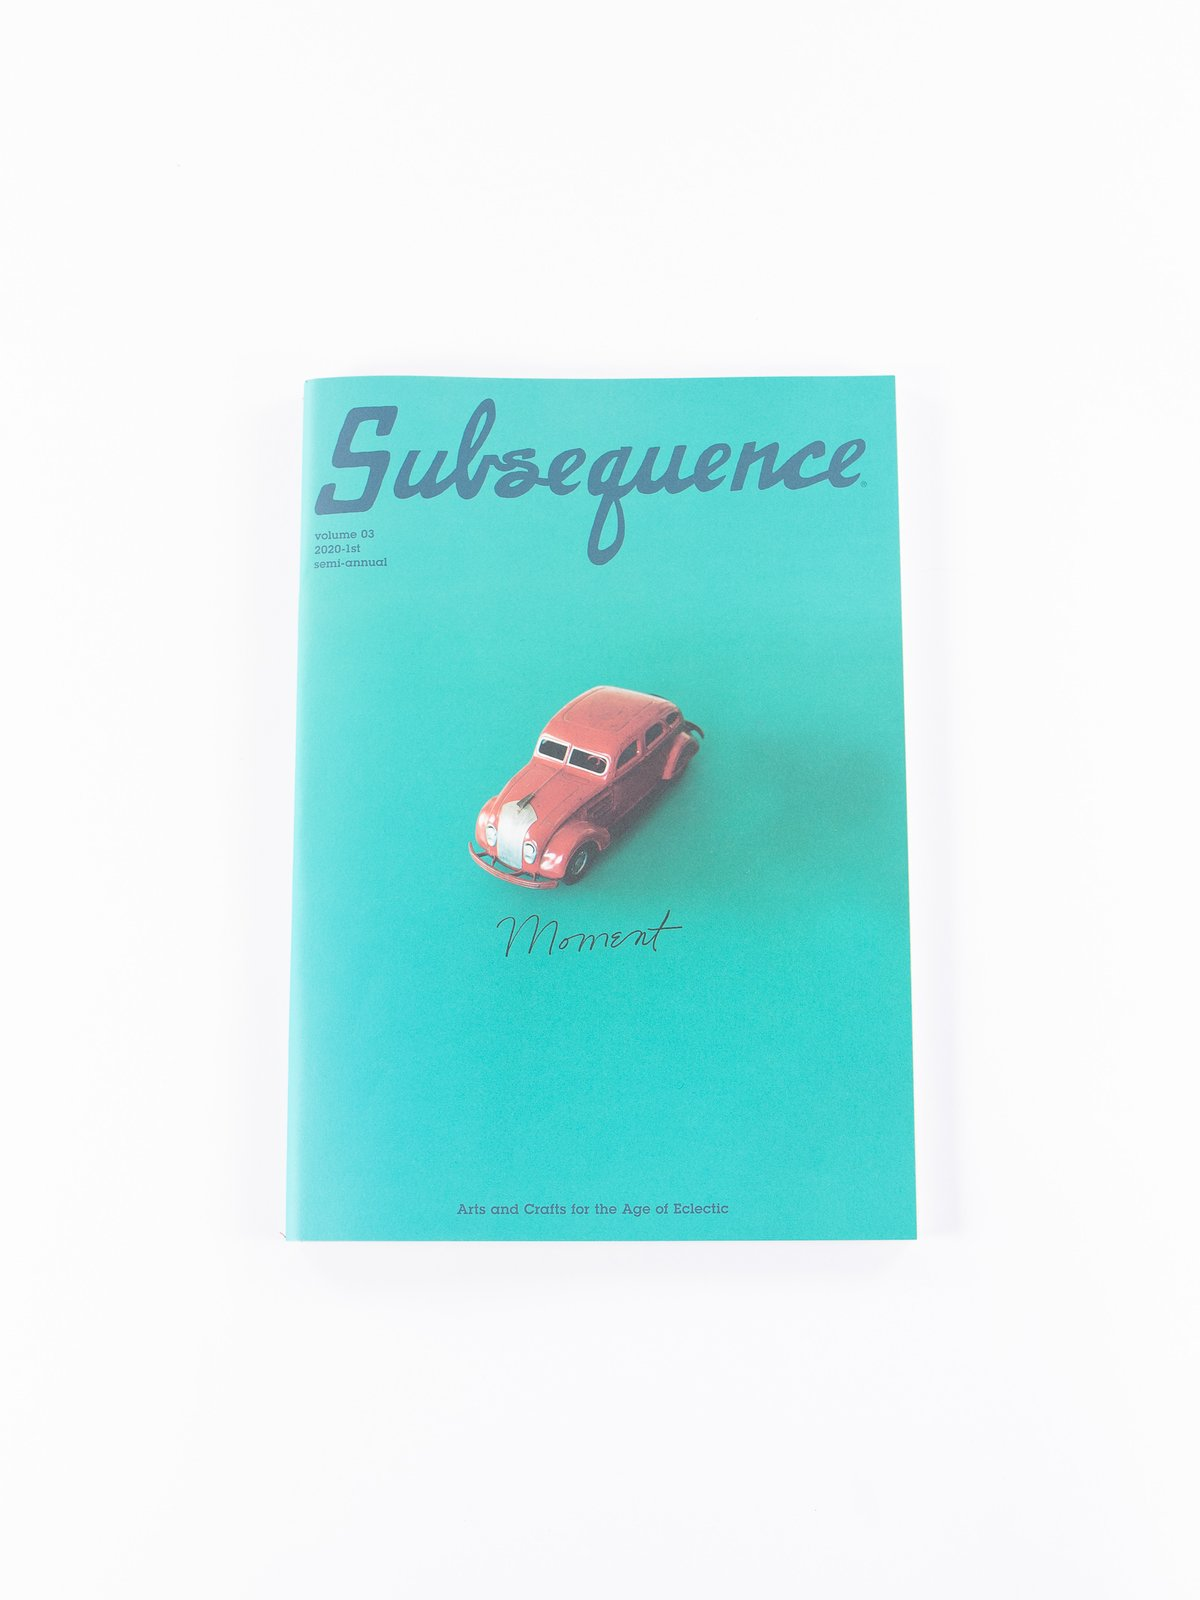 Subsequence Volume 03 - Image 1